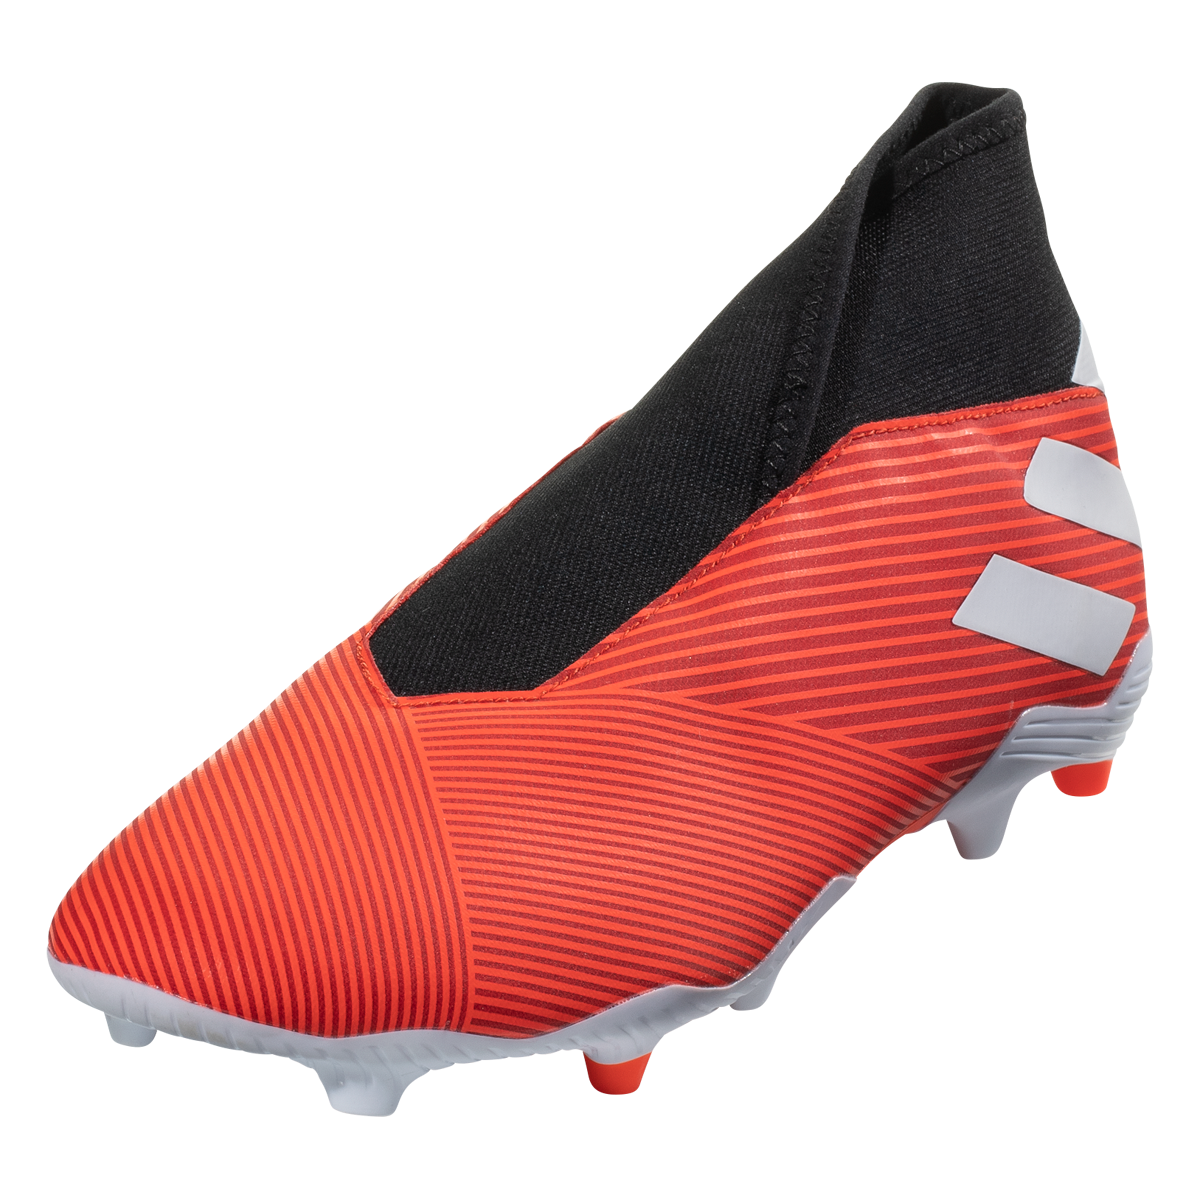 Soccer cleats, Adidas soccer boots